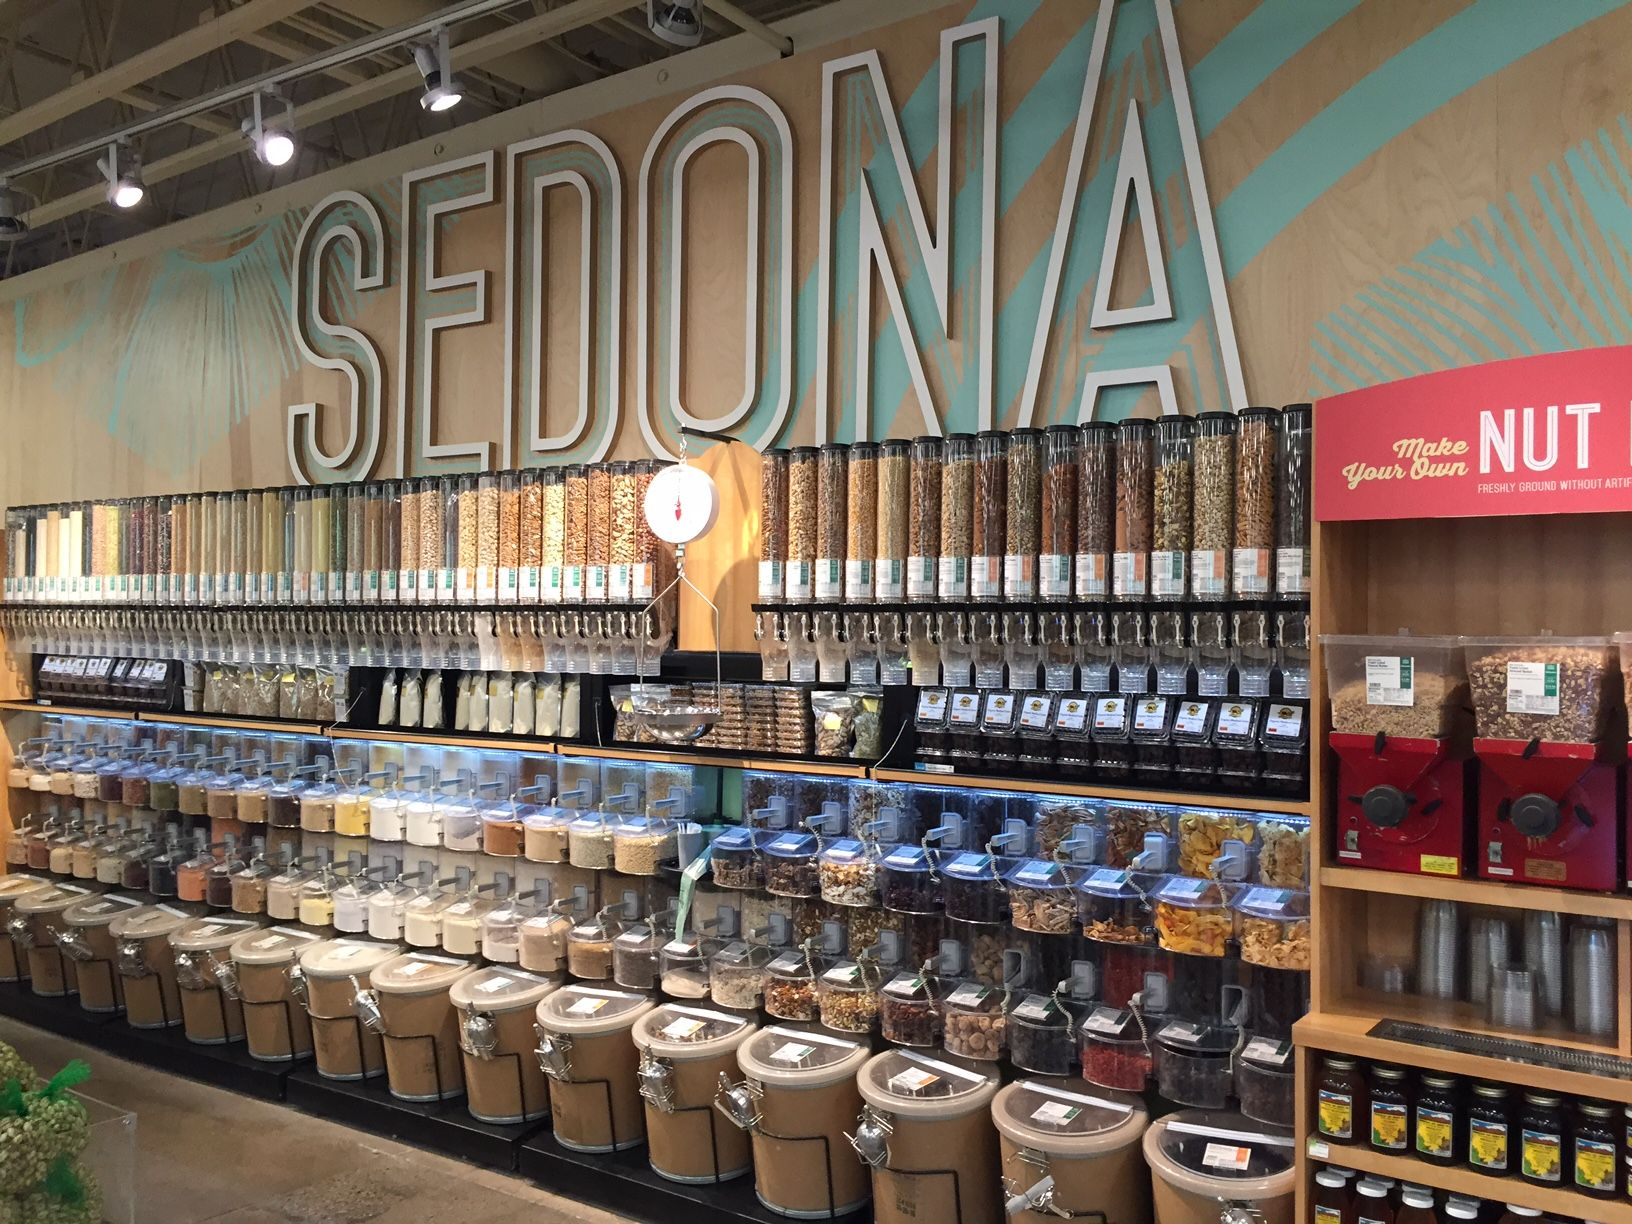 Find Whole Foods Sedona